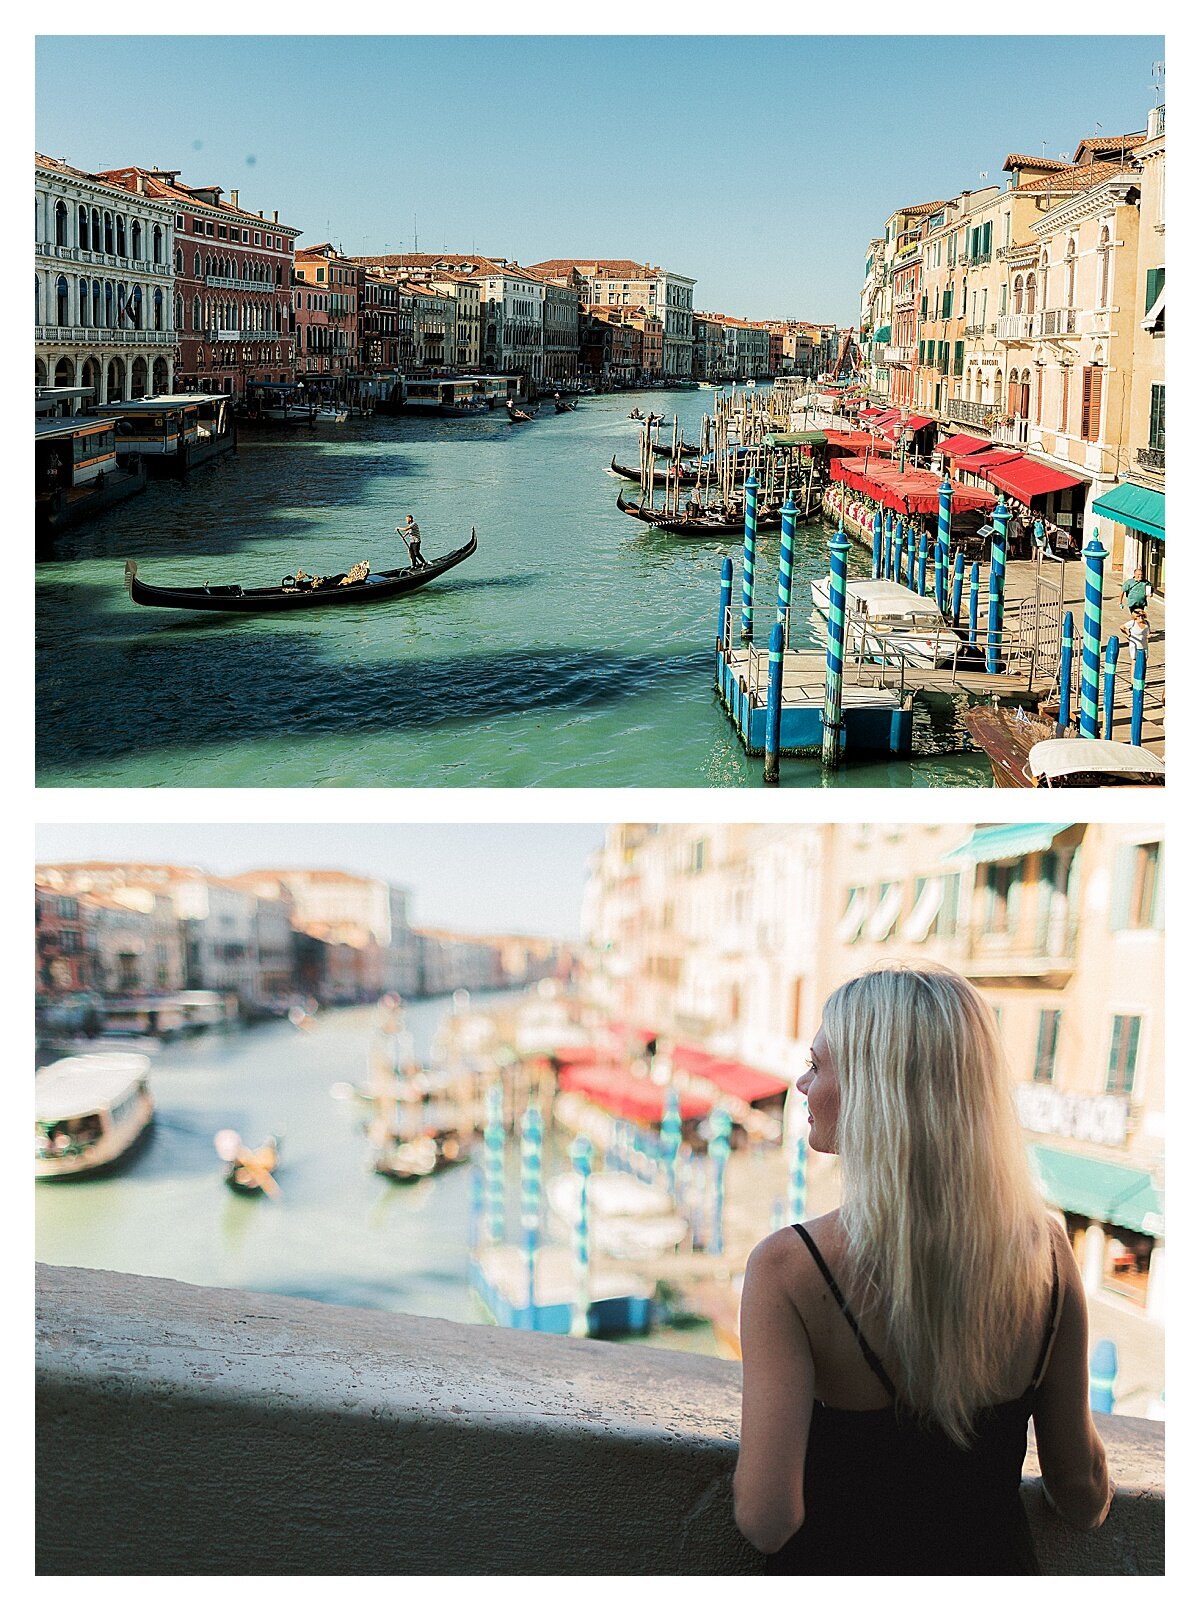 VENICE-COUPLE-PHOTOSHOOT-film-fuji-400h-stefano-degirmenci_0780.jpg